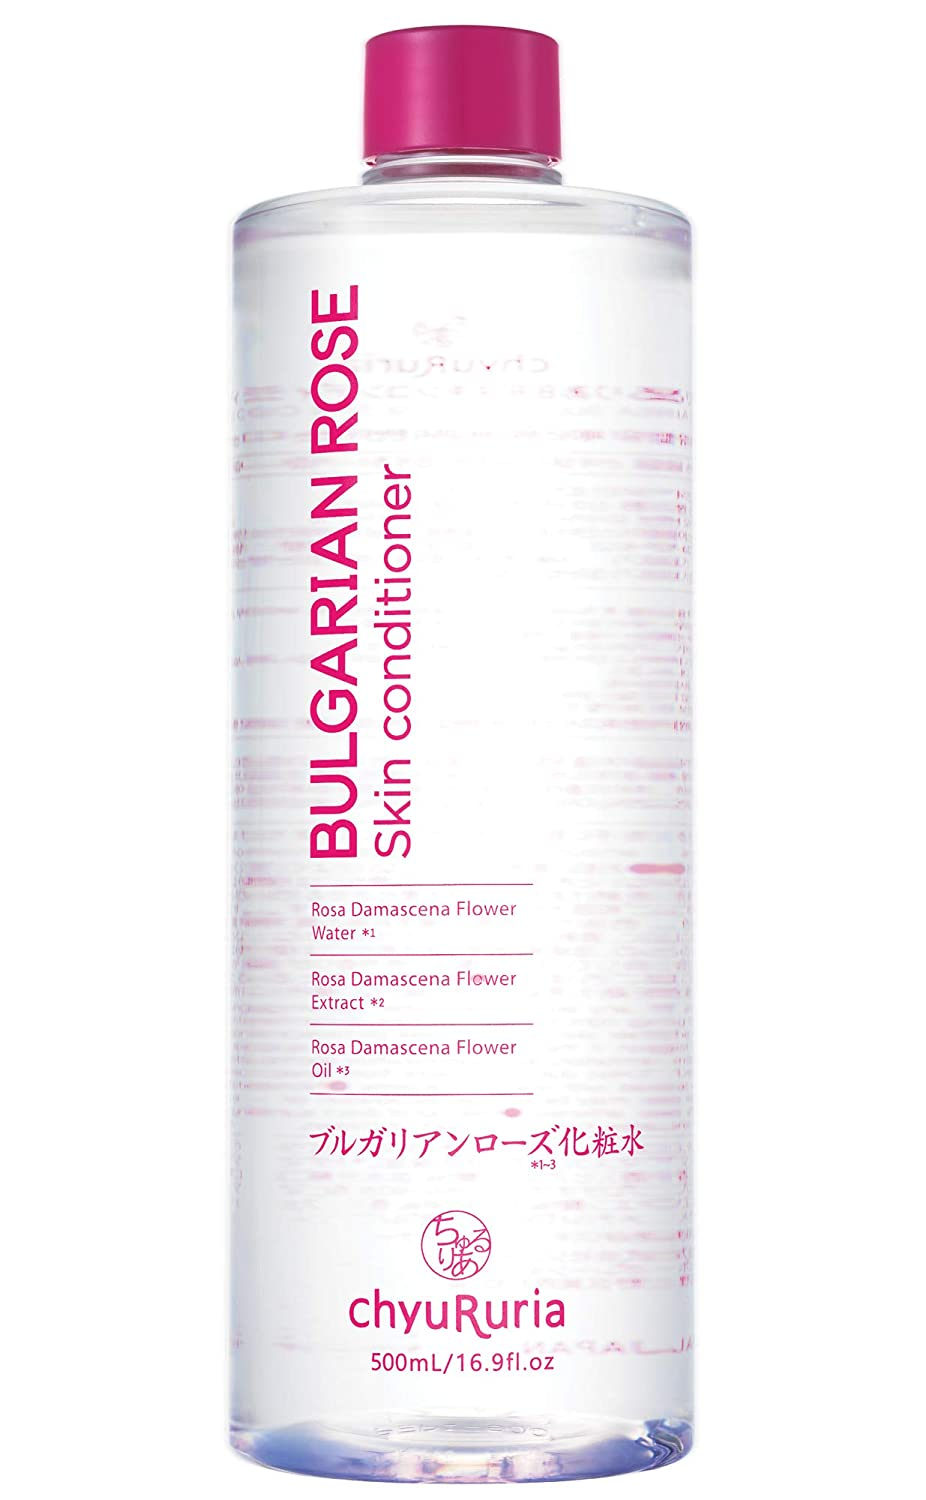 Chyururia Bulgarian Rose Skin Conditioner with Rose Water & Oil, Face Toner for Normal Skin, Product of Korea - 16.9 fl. oz